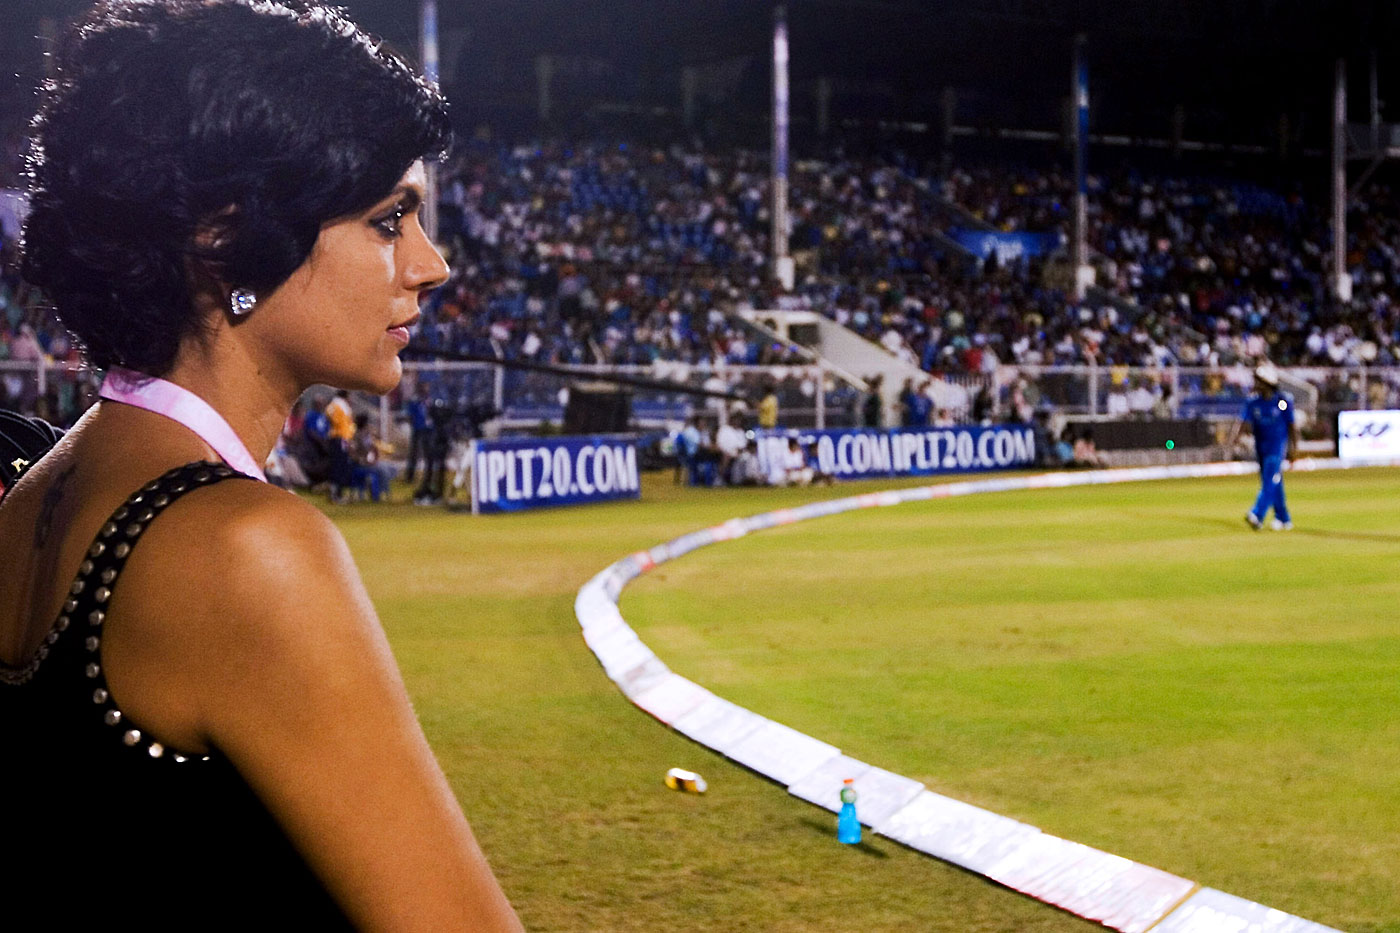 When actor Mandira Bedi took to anchoring cricket broadcasts in 2003, it led to a role as a cricket-crazy schoolteacher in <i>Meerabai Not Out</i>, in which Anil Kumble made an appearance